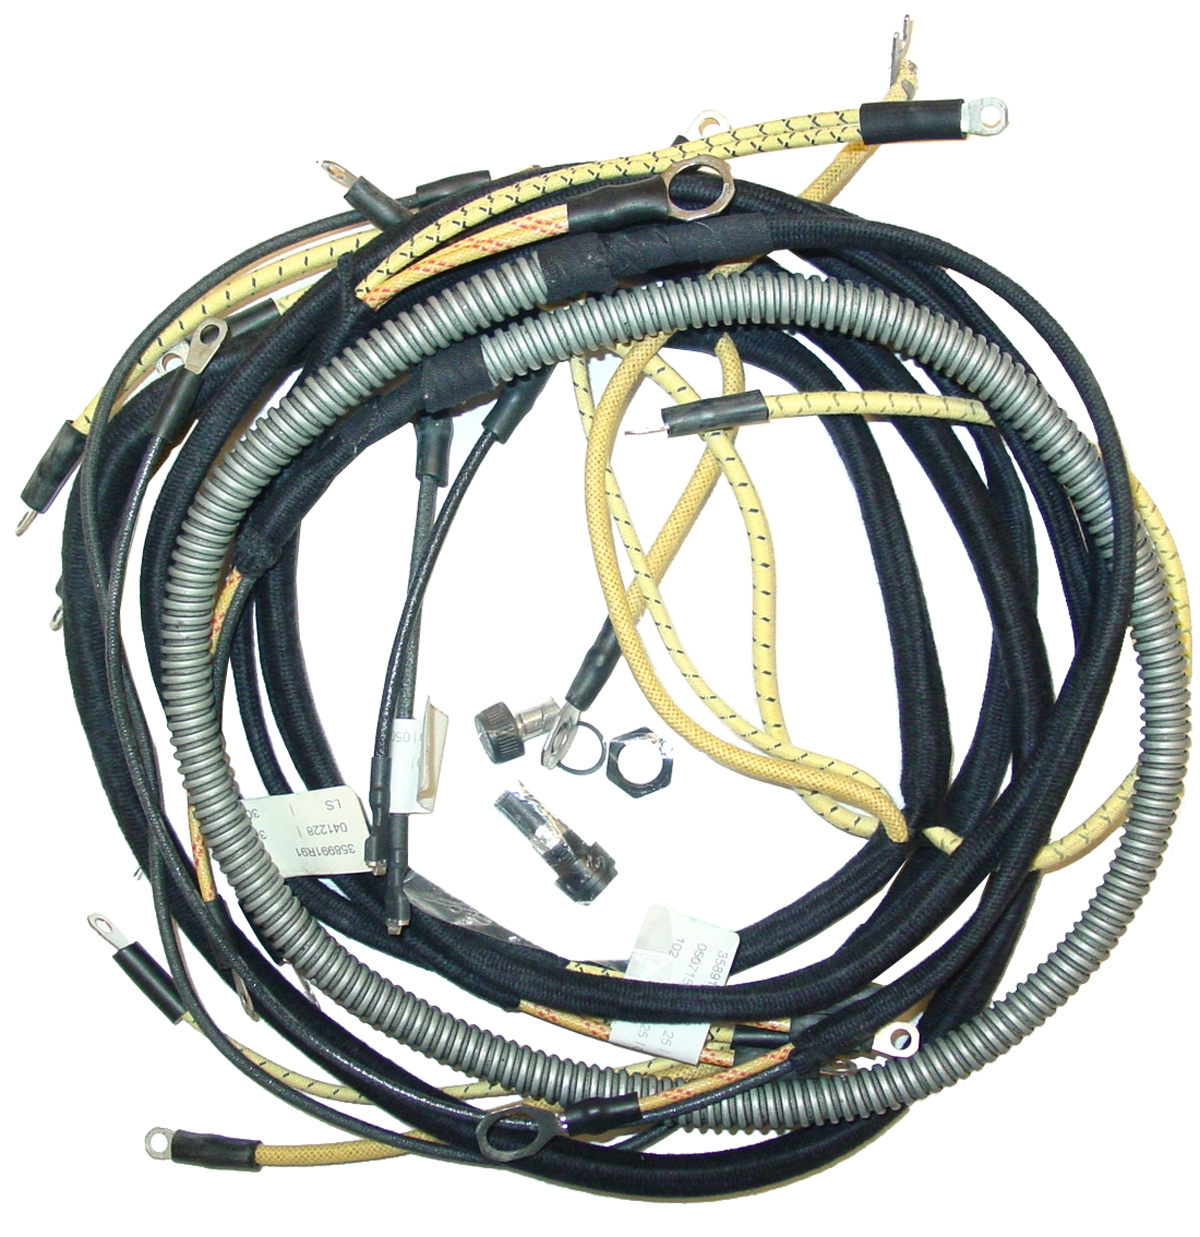 hight resolution of farmall h wiring harness 19 sg dbd de u2022farmall super h serial number up to